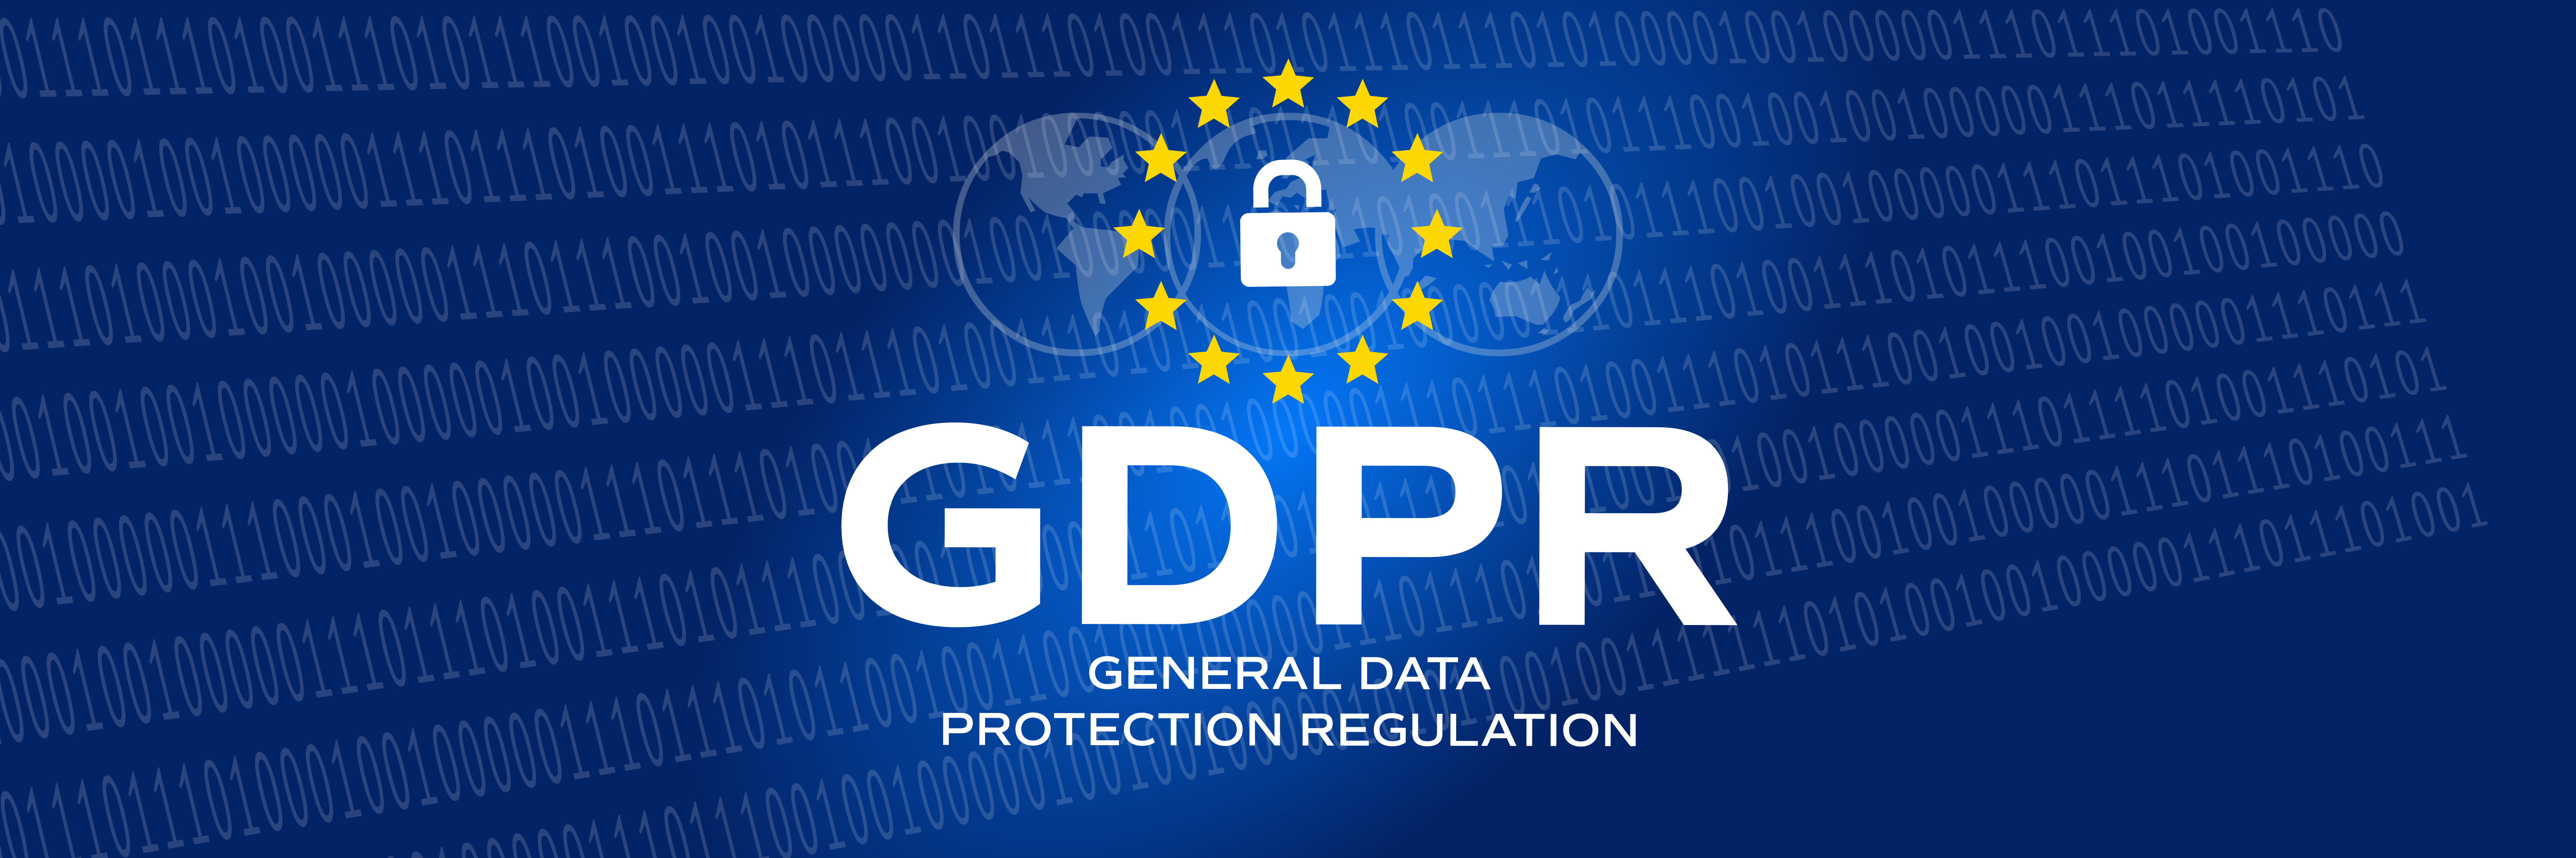 New GDPR standard contractual clauses (SCCs) issued by the European Commission